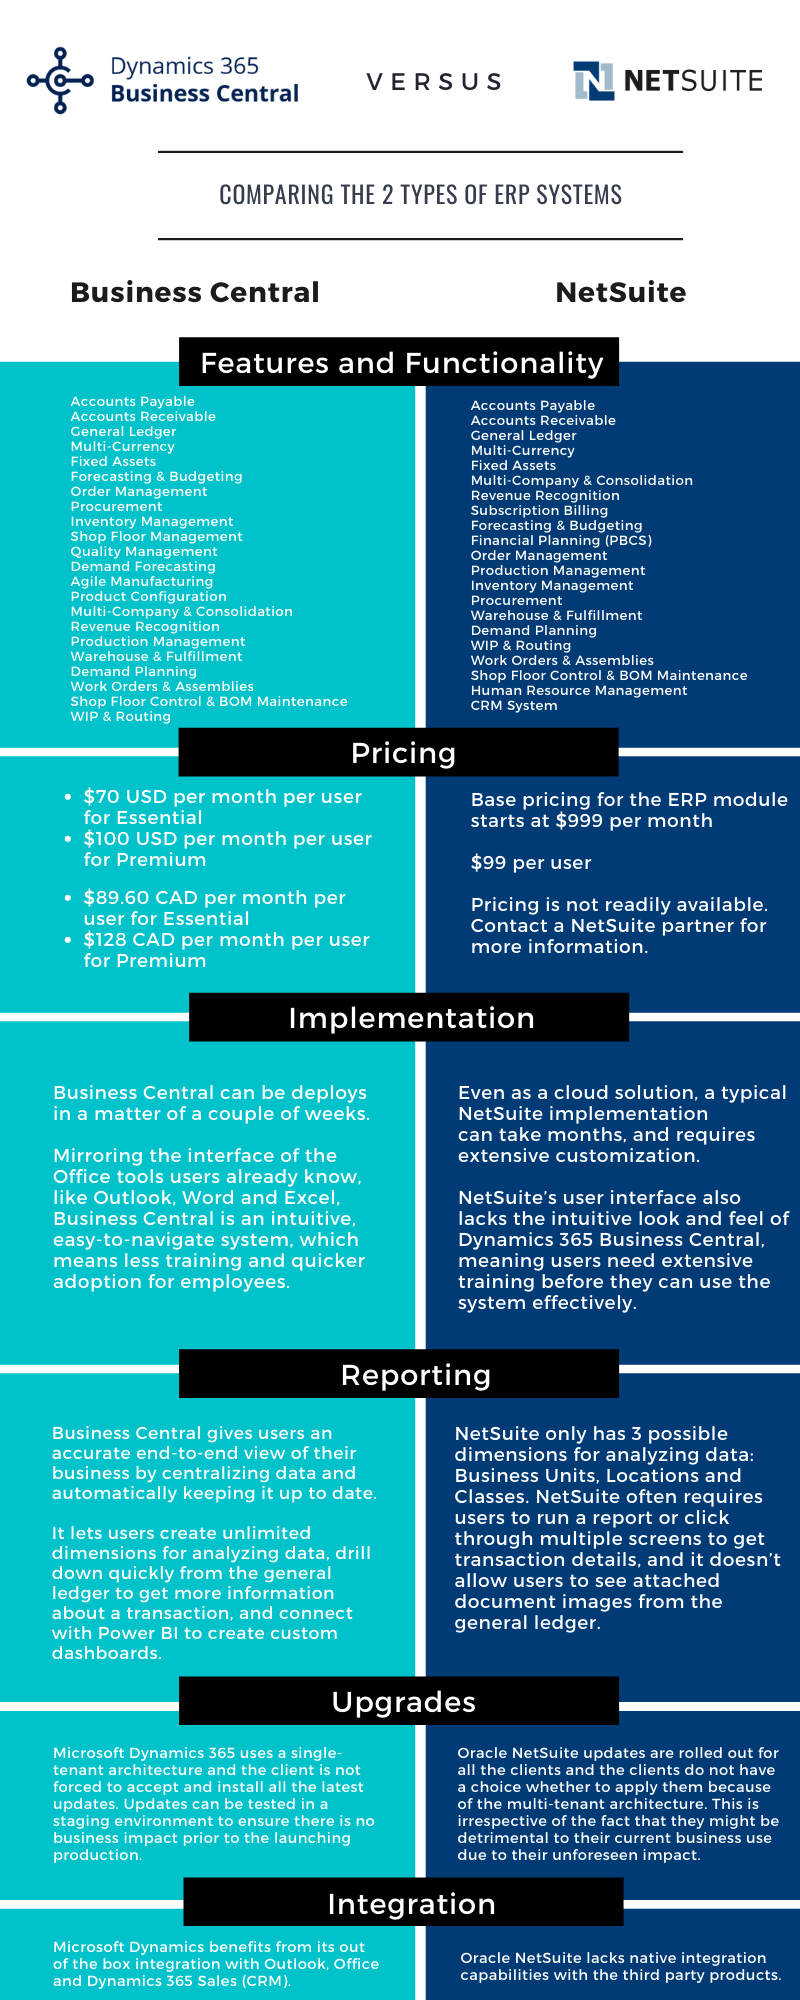 Business Central vs netsuite infographic v3